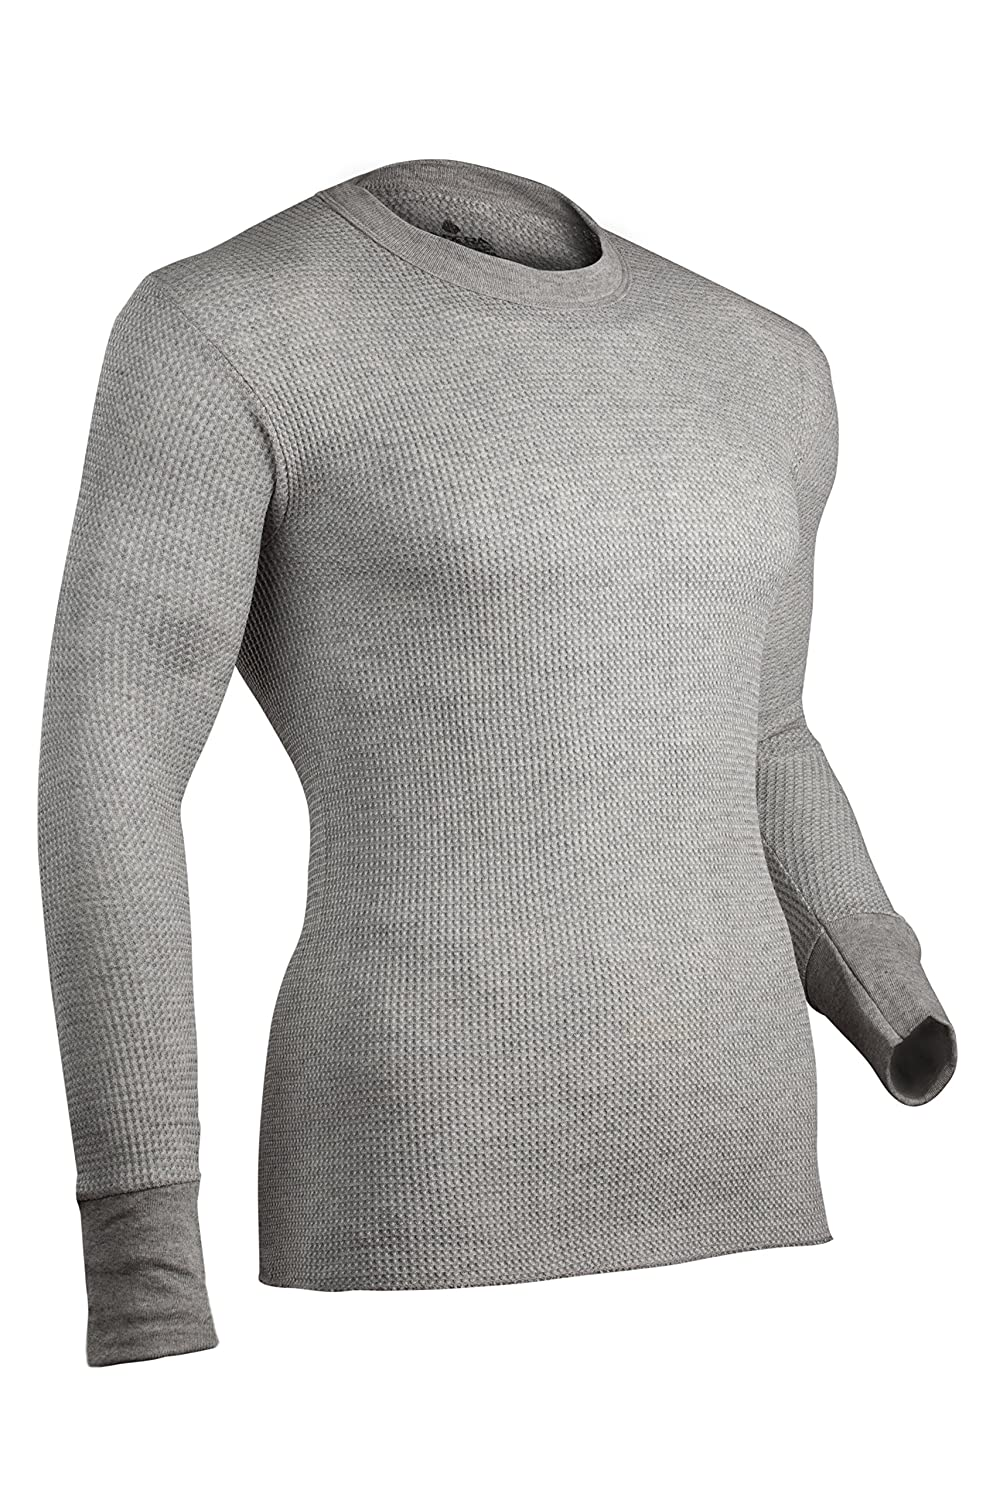 Indera Herren Traditionelle Long Johns Thermo-Unterwäsche Top